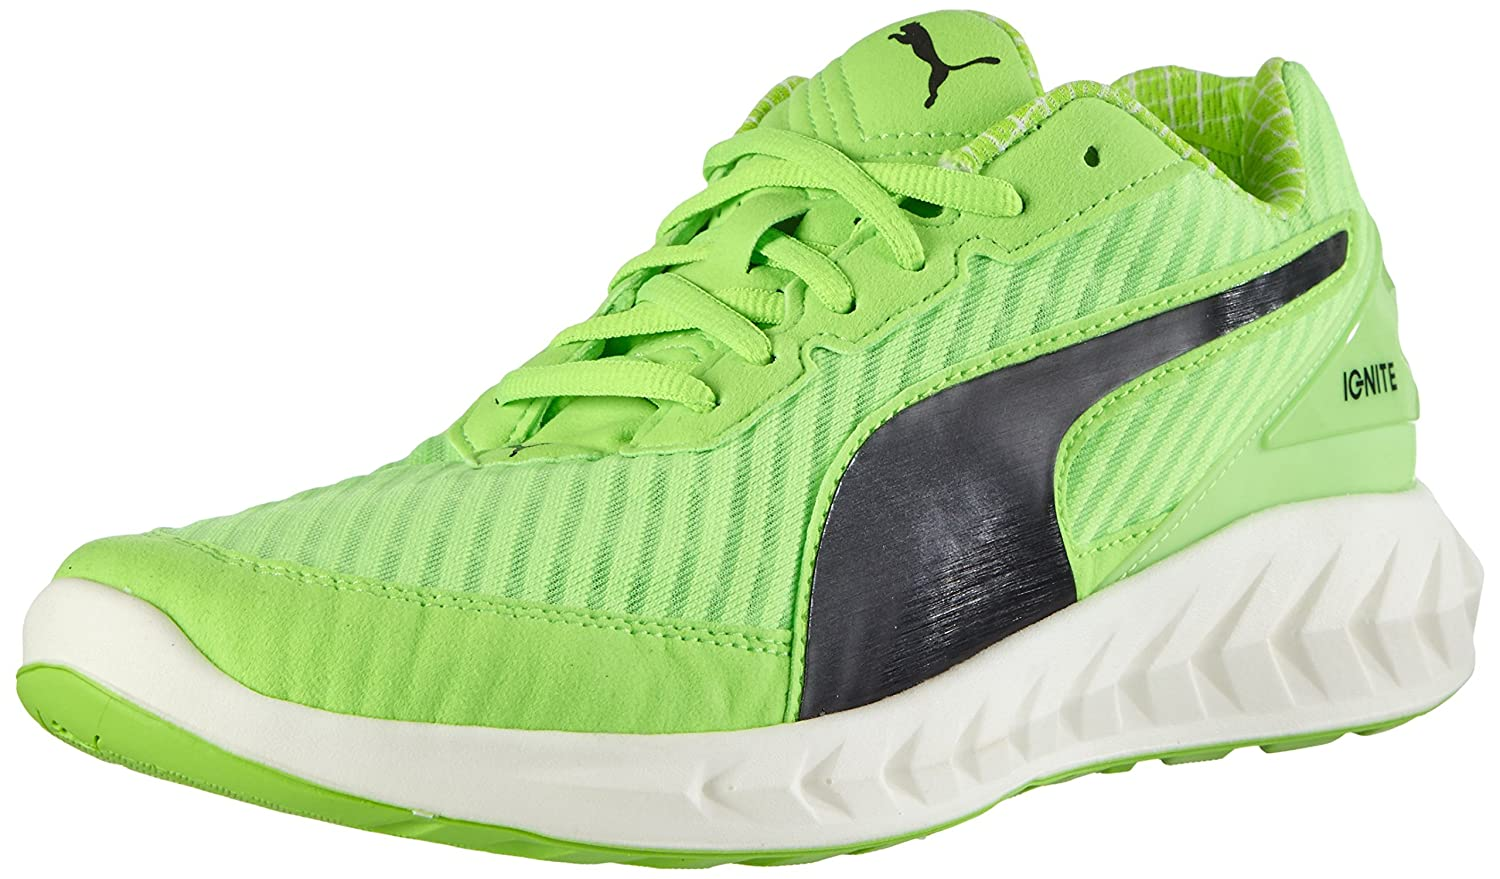 Puma Ignite Ultimate PWRCOOL Scarpa Running Verde 6 -  mainstreetblytheville.org be49715ef81